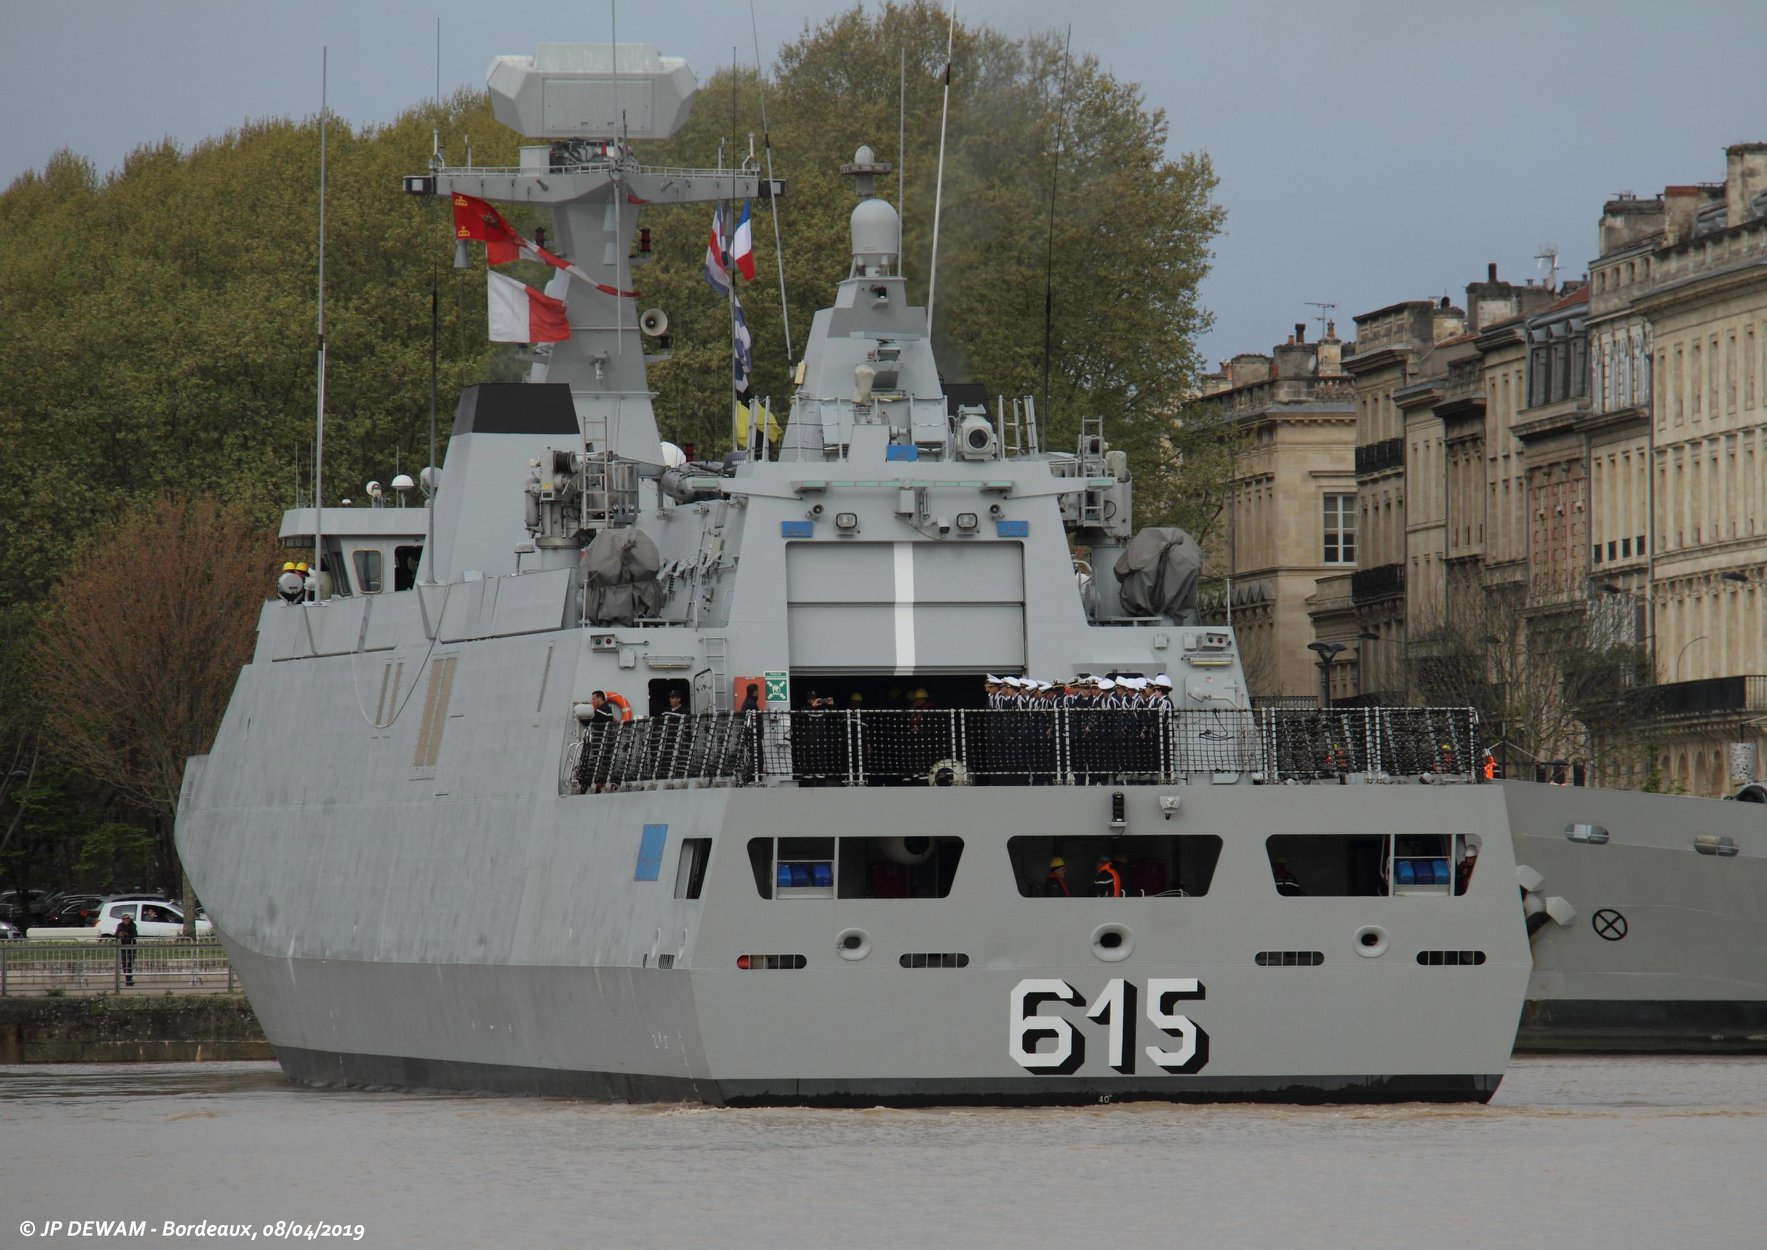 Royal Moroccan Navy Sigma class frigates / Frégates marocaines multimissions Sigma - Page 25 40633589943_d8a1feca57_o